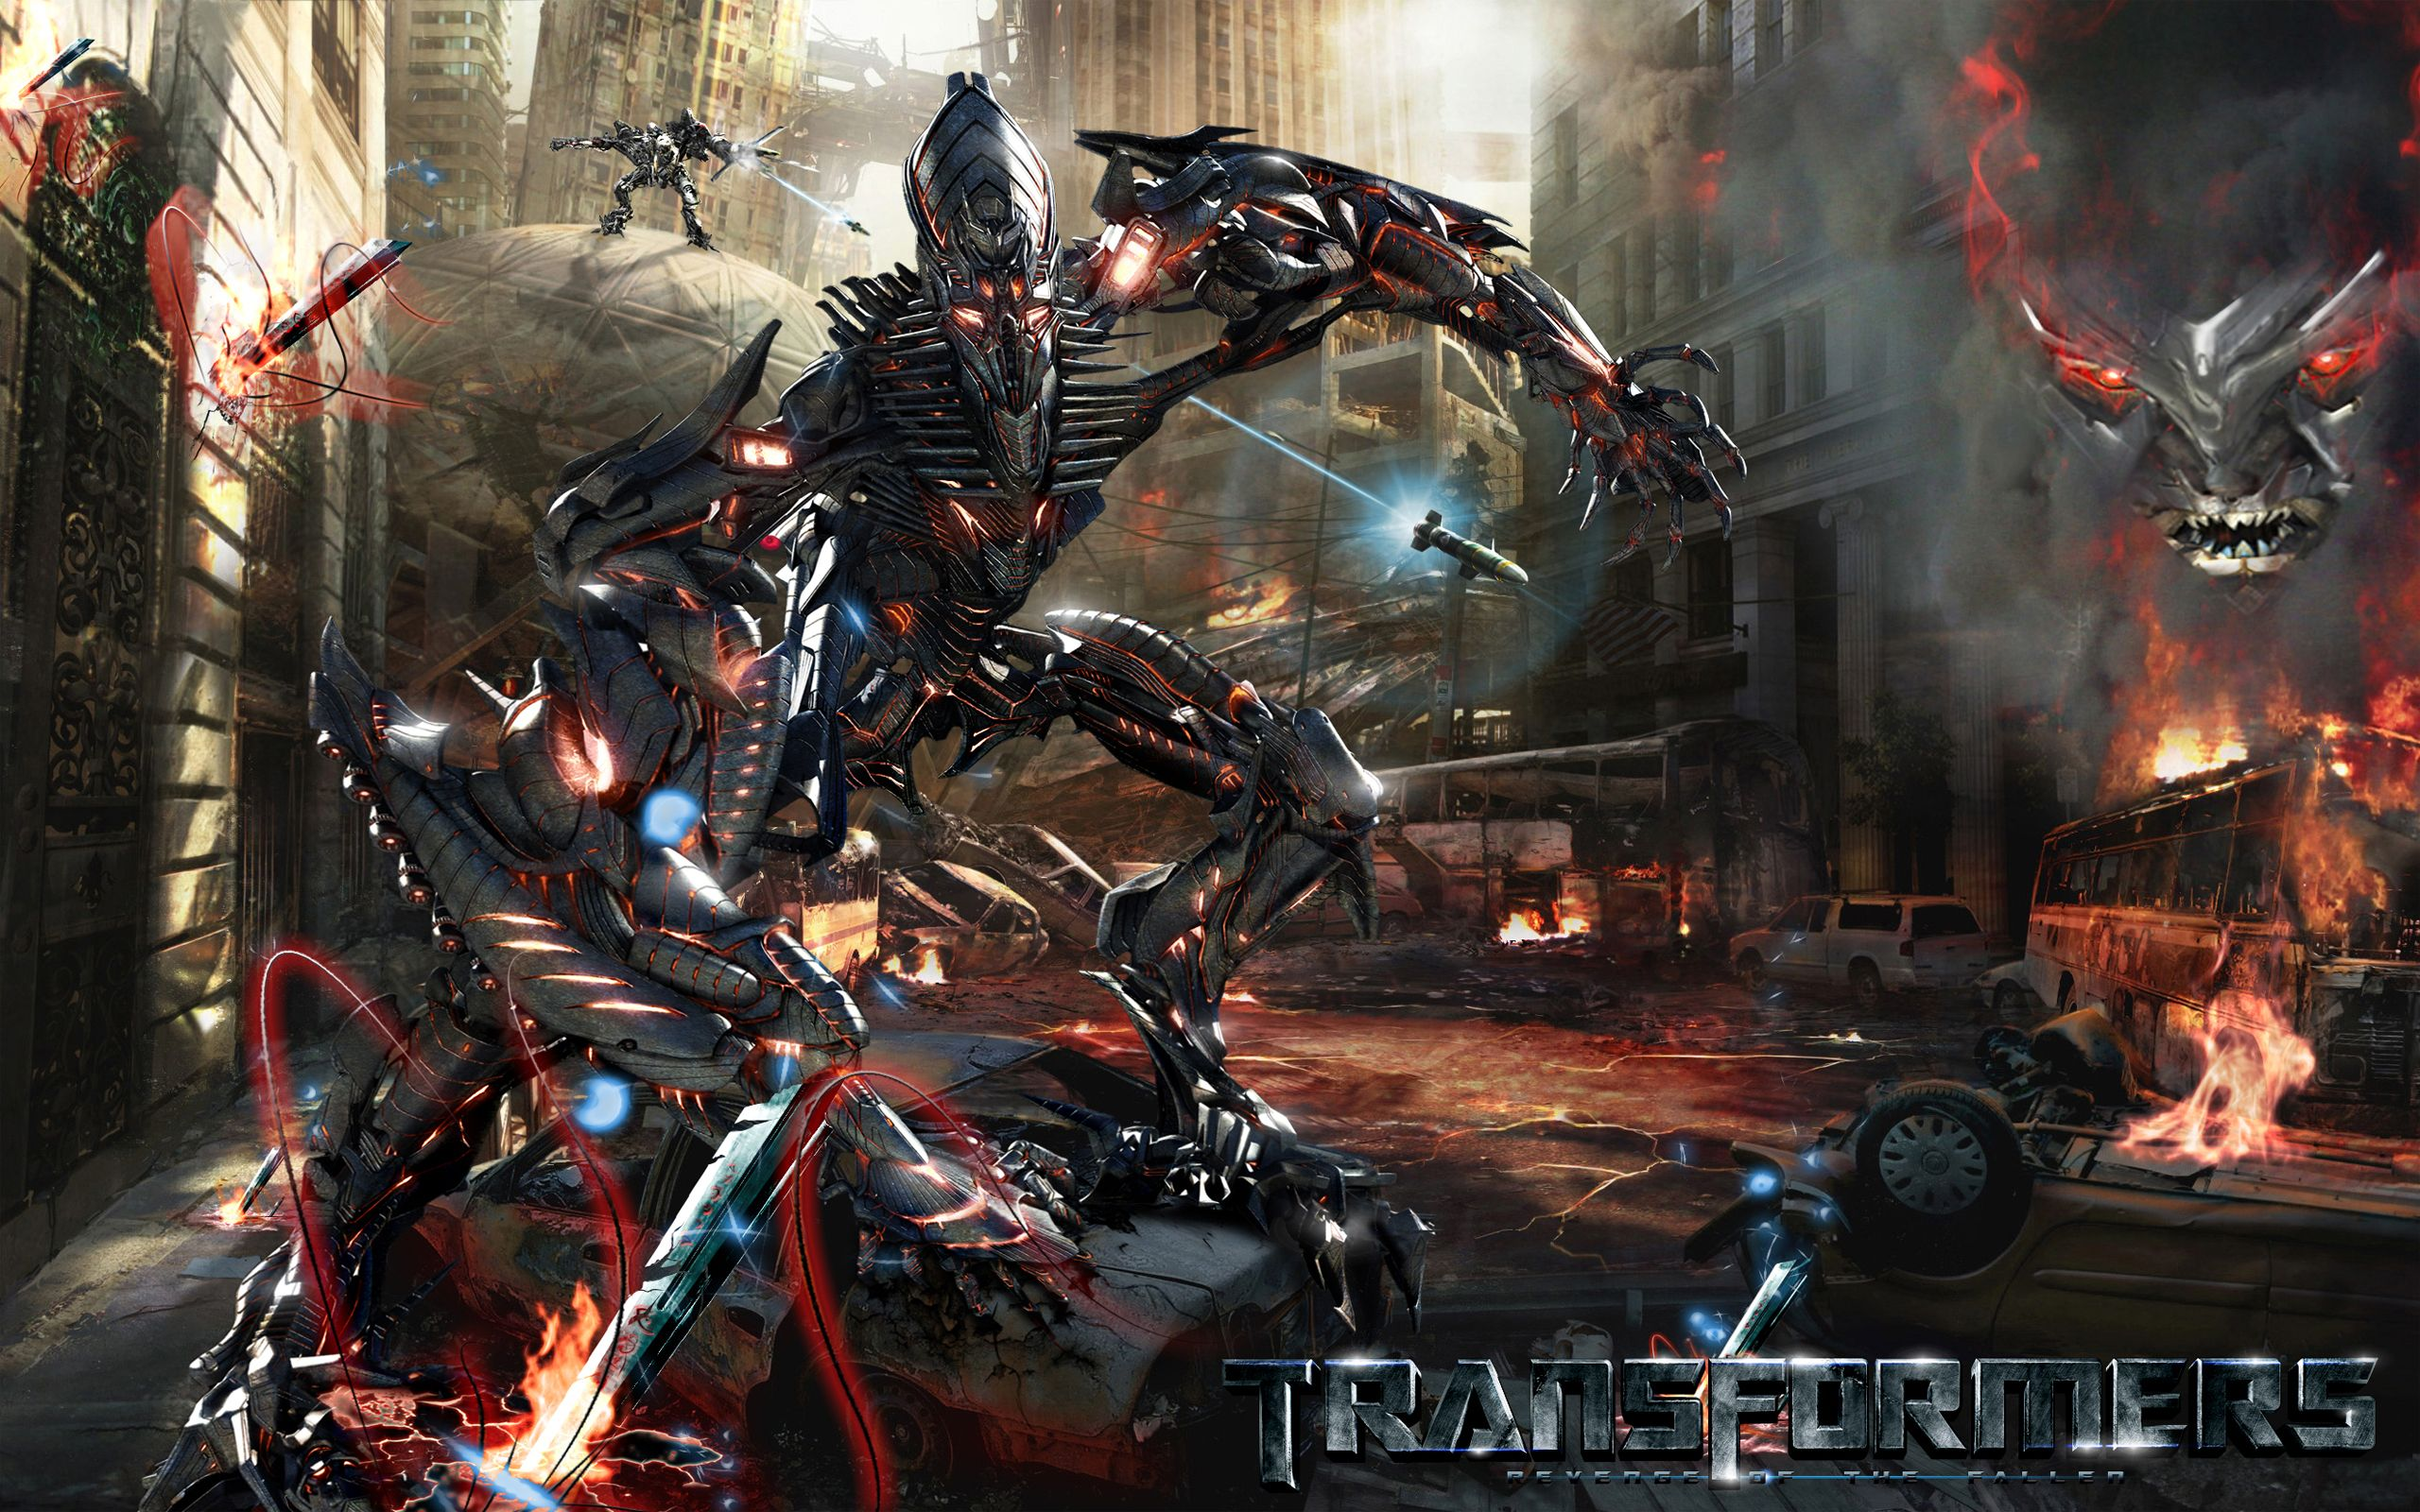 Decepticons to power d transformers pinterest transformers movie wallpapers page crazy frankenstein transformer movie wallpapers amipublicfo Choice Image